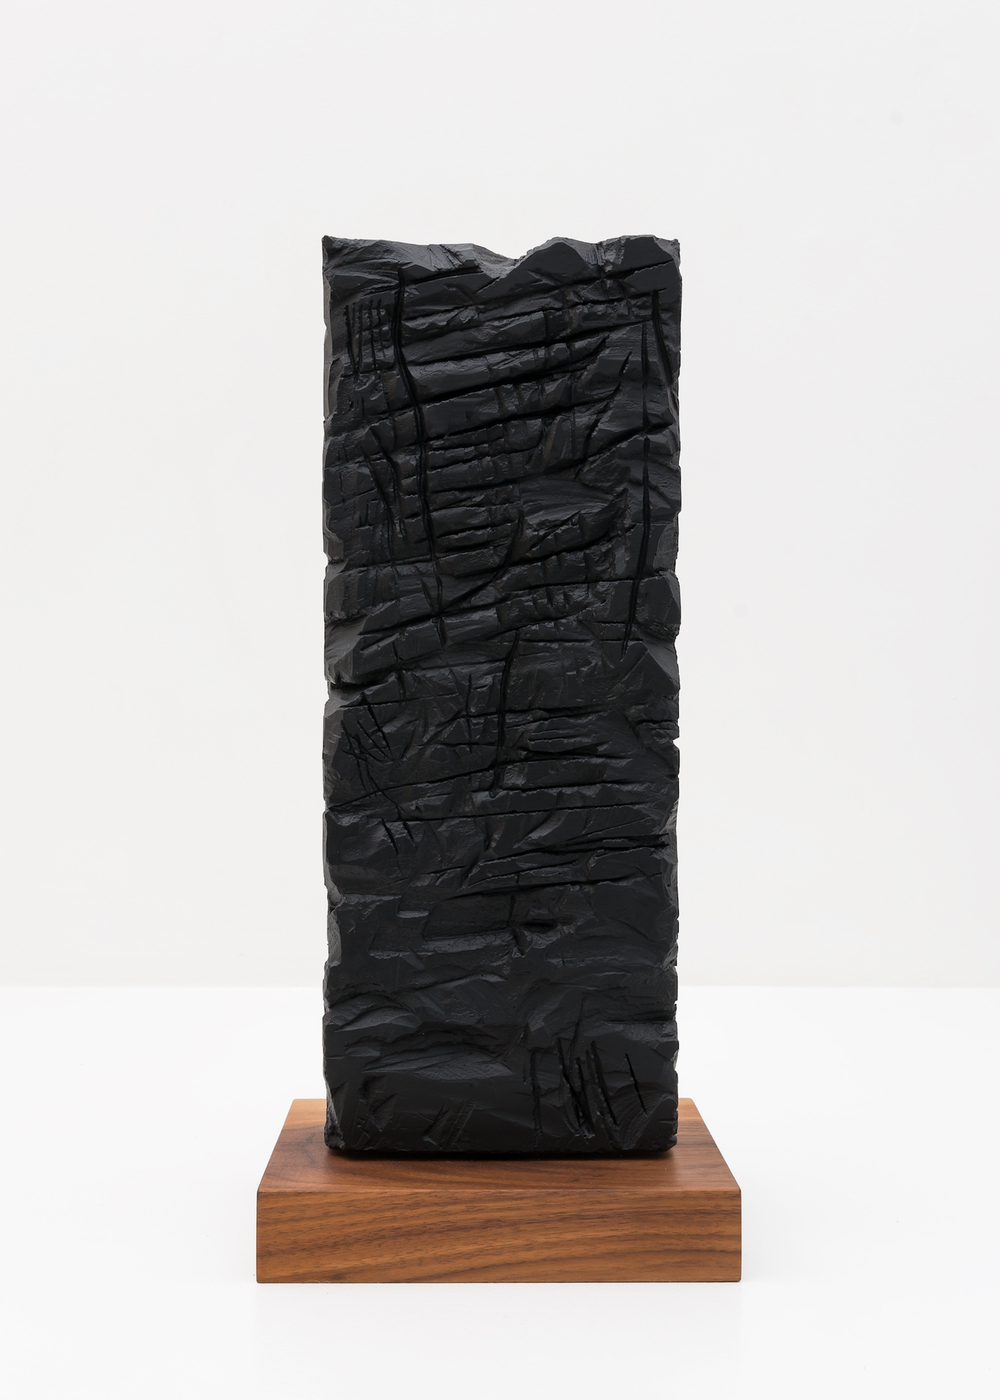 Anthony Pearson  Untitled (Freestanding Sculpture)  2015 Medium coated pigmented white art plaster with oiled walnut base 18h x 7w x 3 ½d in AP372